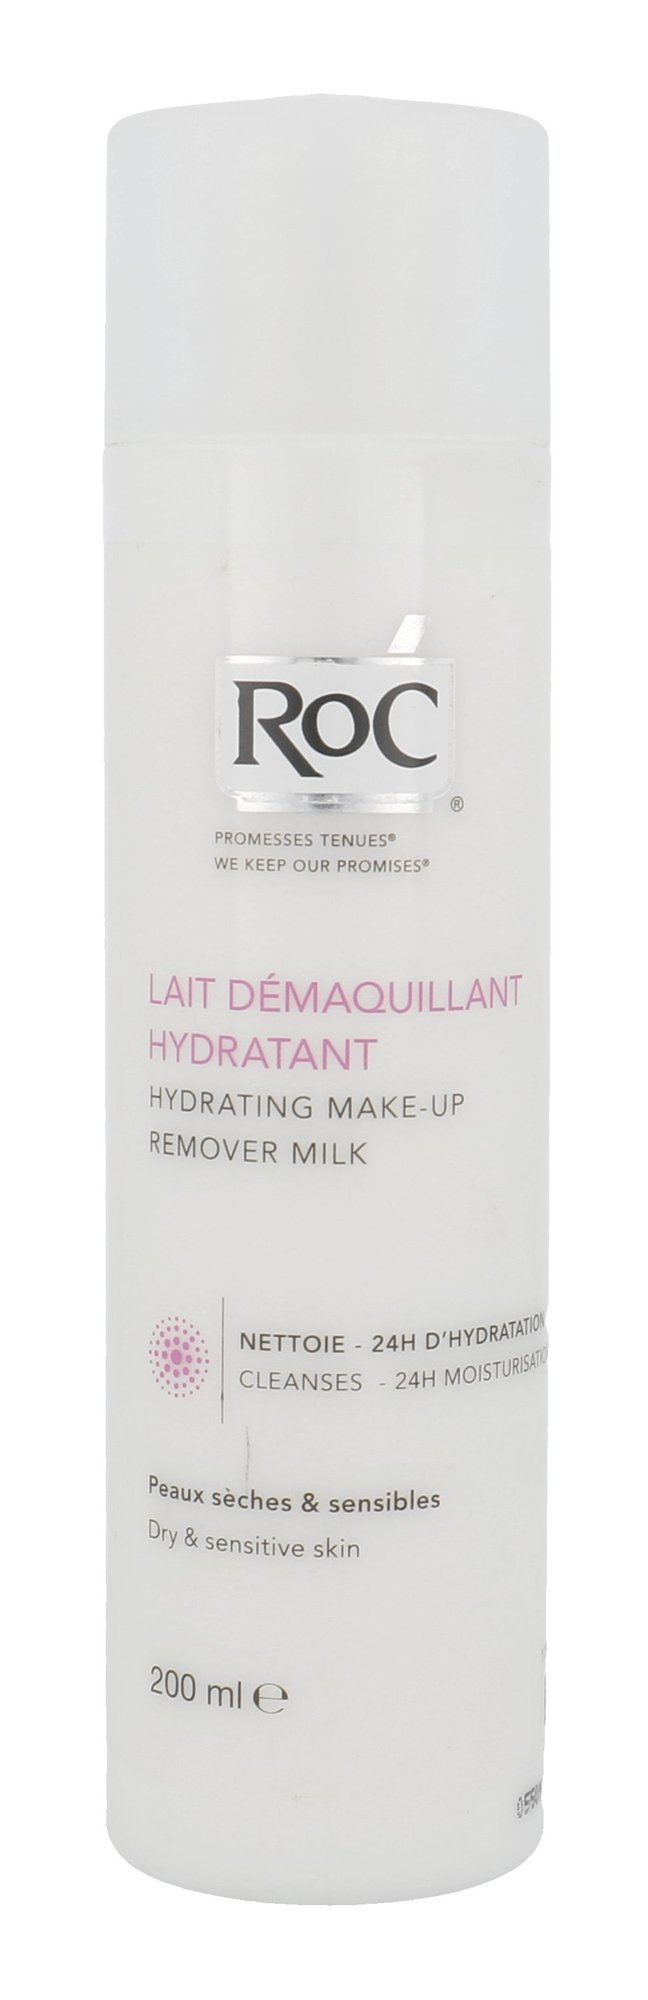 RoC Hydrating Make-Up Remover Milk Cosmetic 200ml